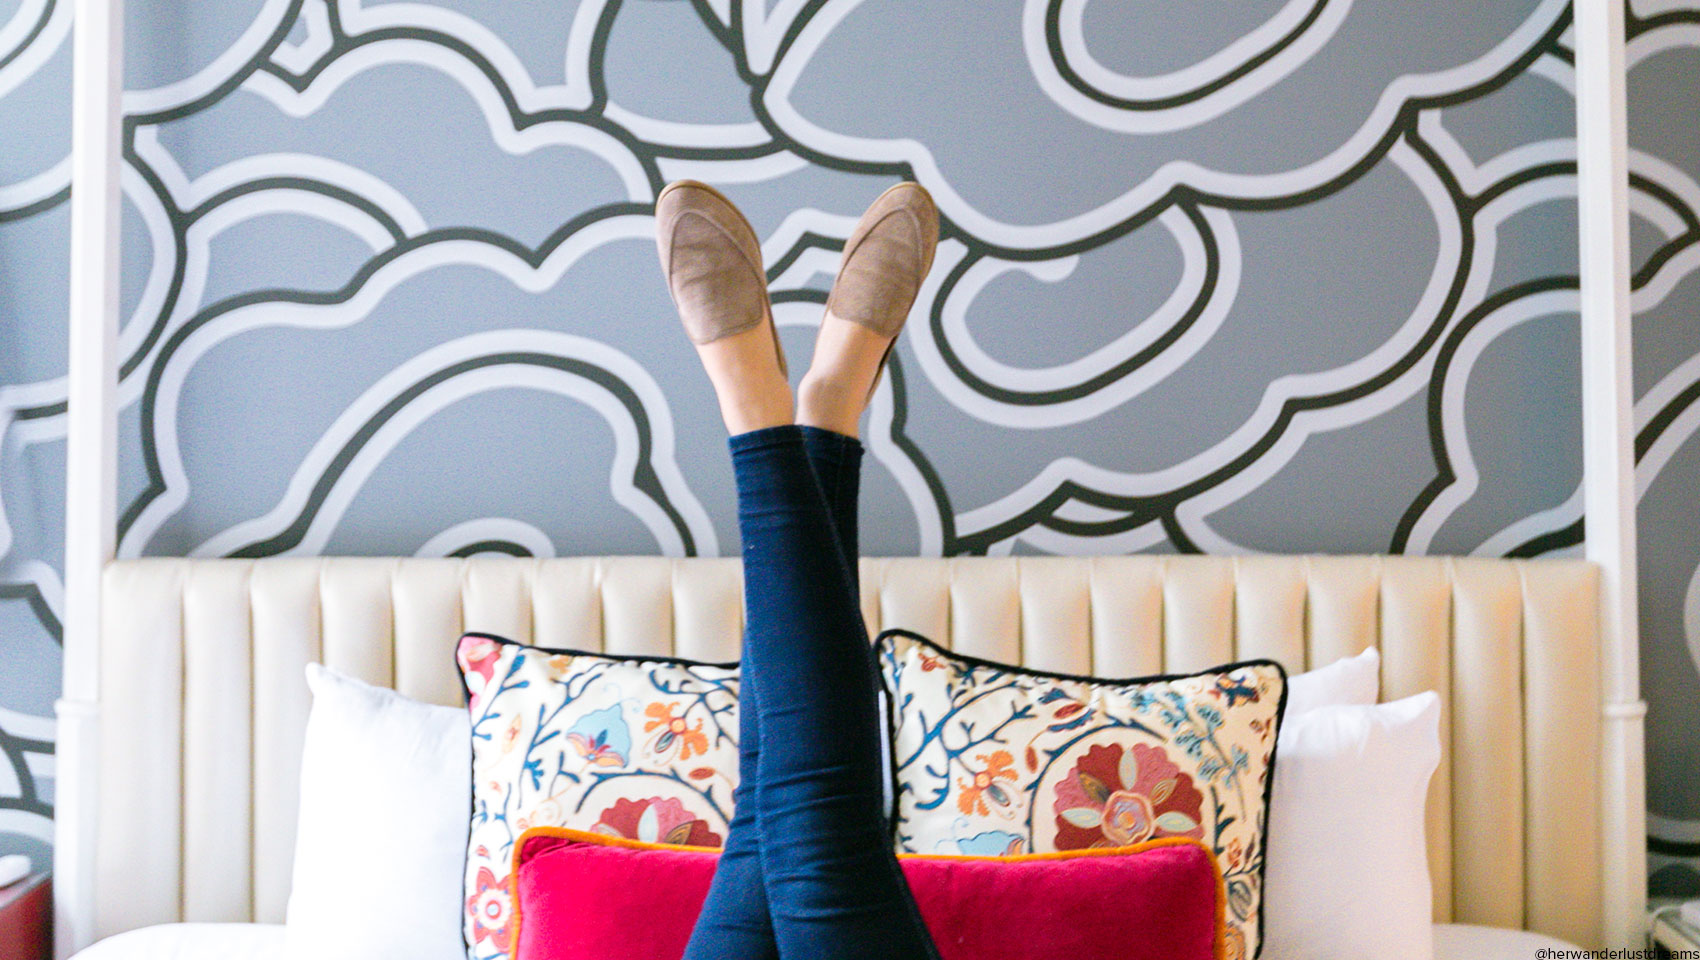 female guest's legs in bluejeans in loafers crossed in the air in the foreground of hotel monaco guestroom cloud motif wallpaper and white bed